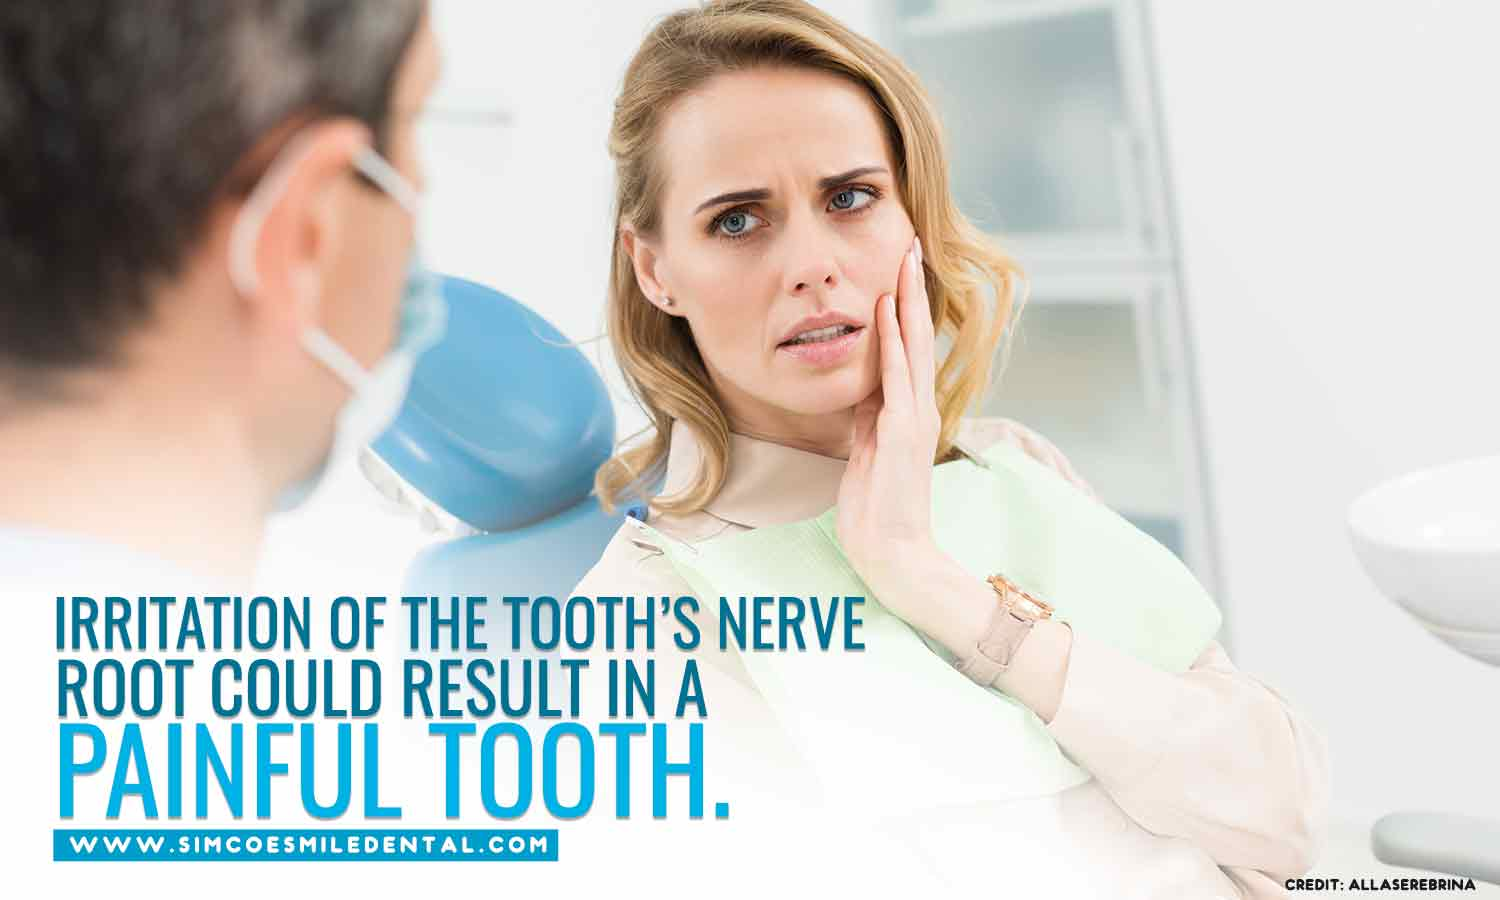 Irritation-of-the-tooth's-nerve-root-could-result-in-a-painful-tooth Dental Problems You Should Never Ignore